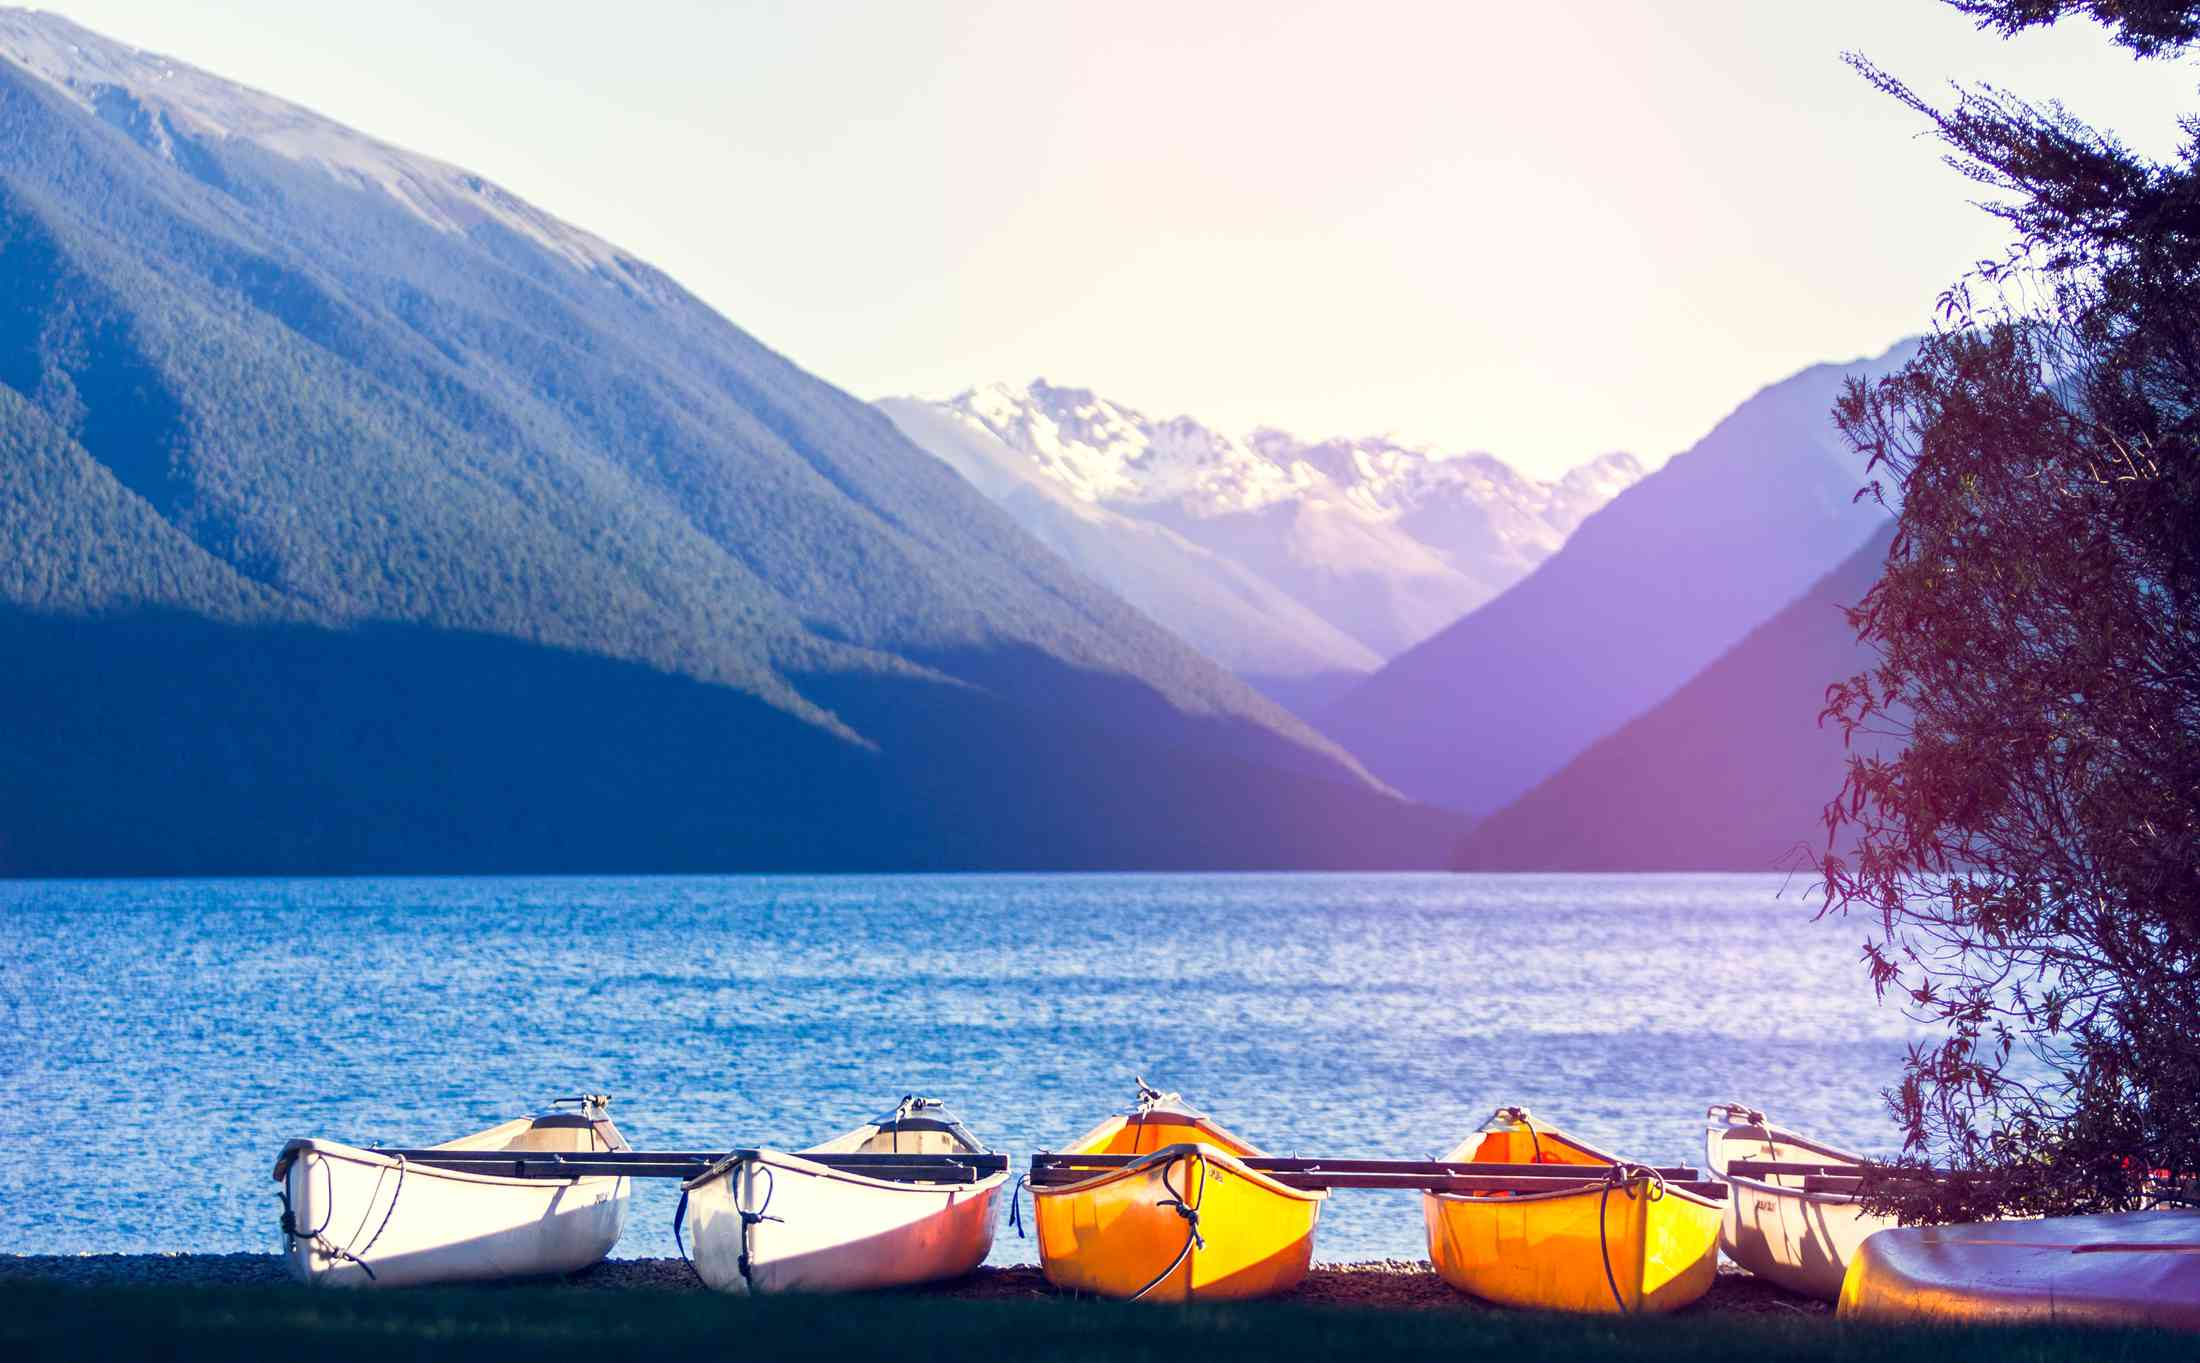 mountains and lake with white and yellow kayaks in foreground